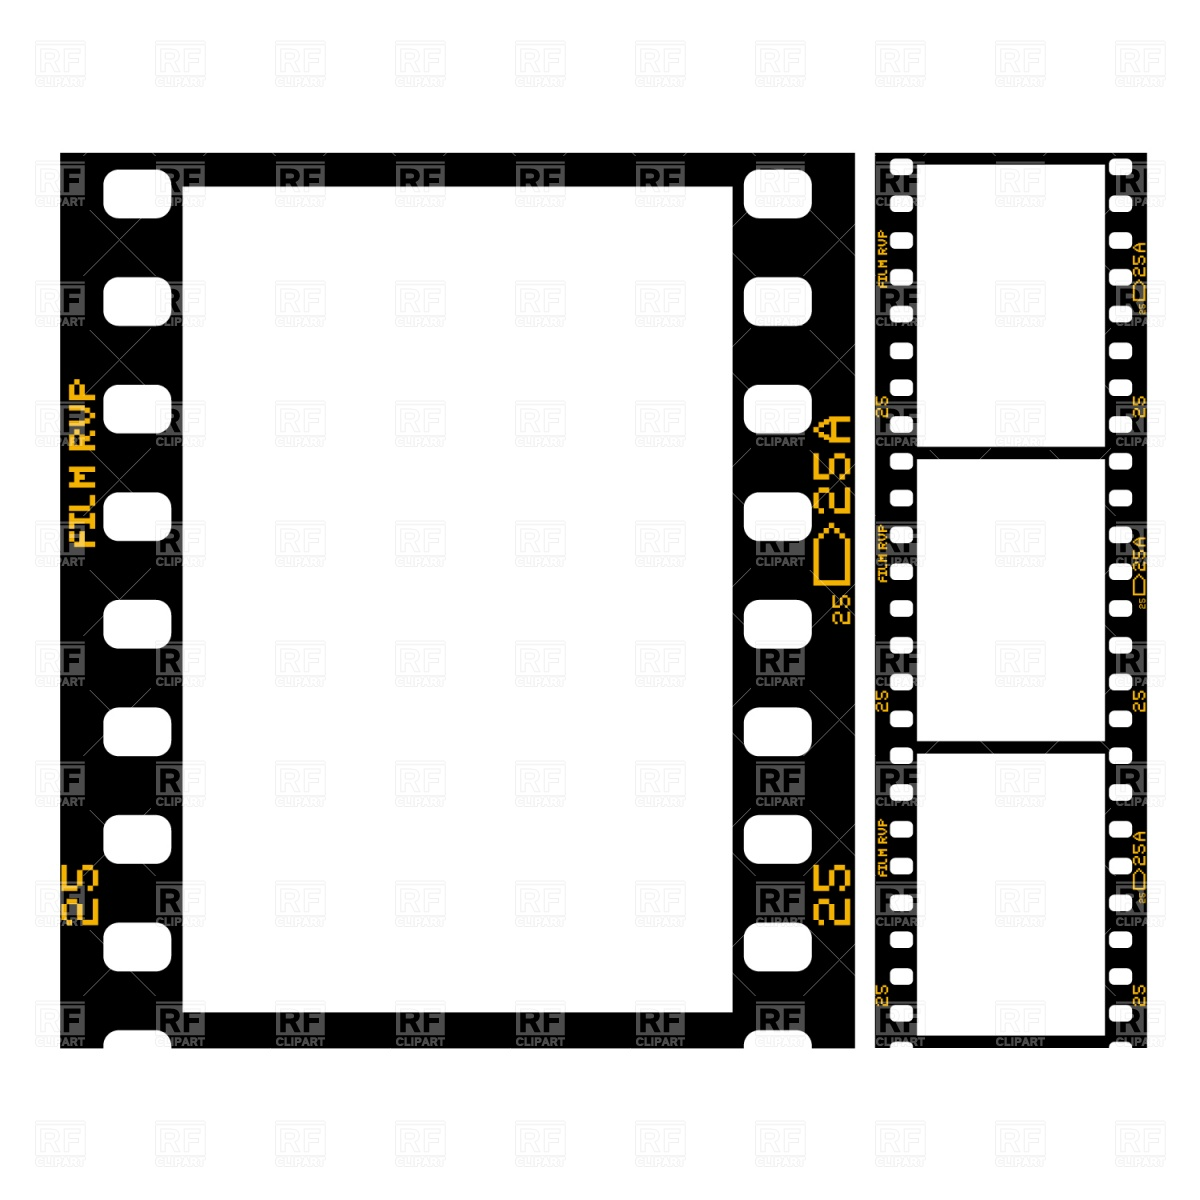 Movie reel clipart free download best movie reel clipart on 1200x1200 movie reel clipart border thecheapjerseys Choice Image